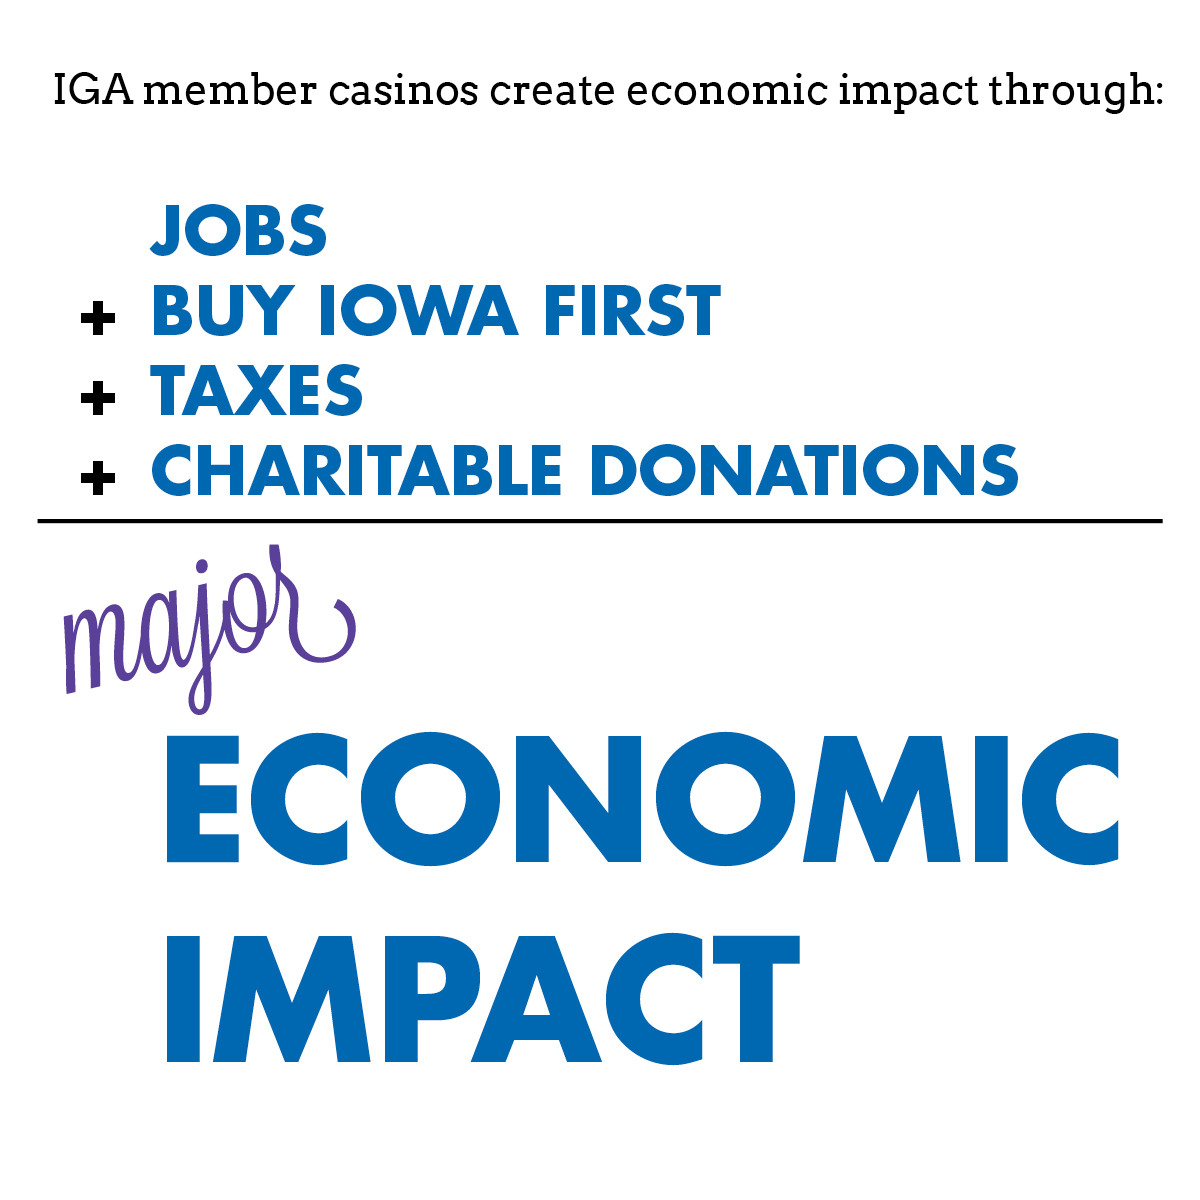 Casino economic impact isleta casino and resort facilities manager